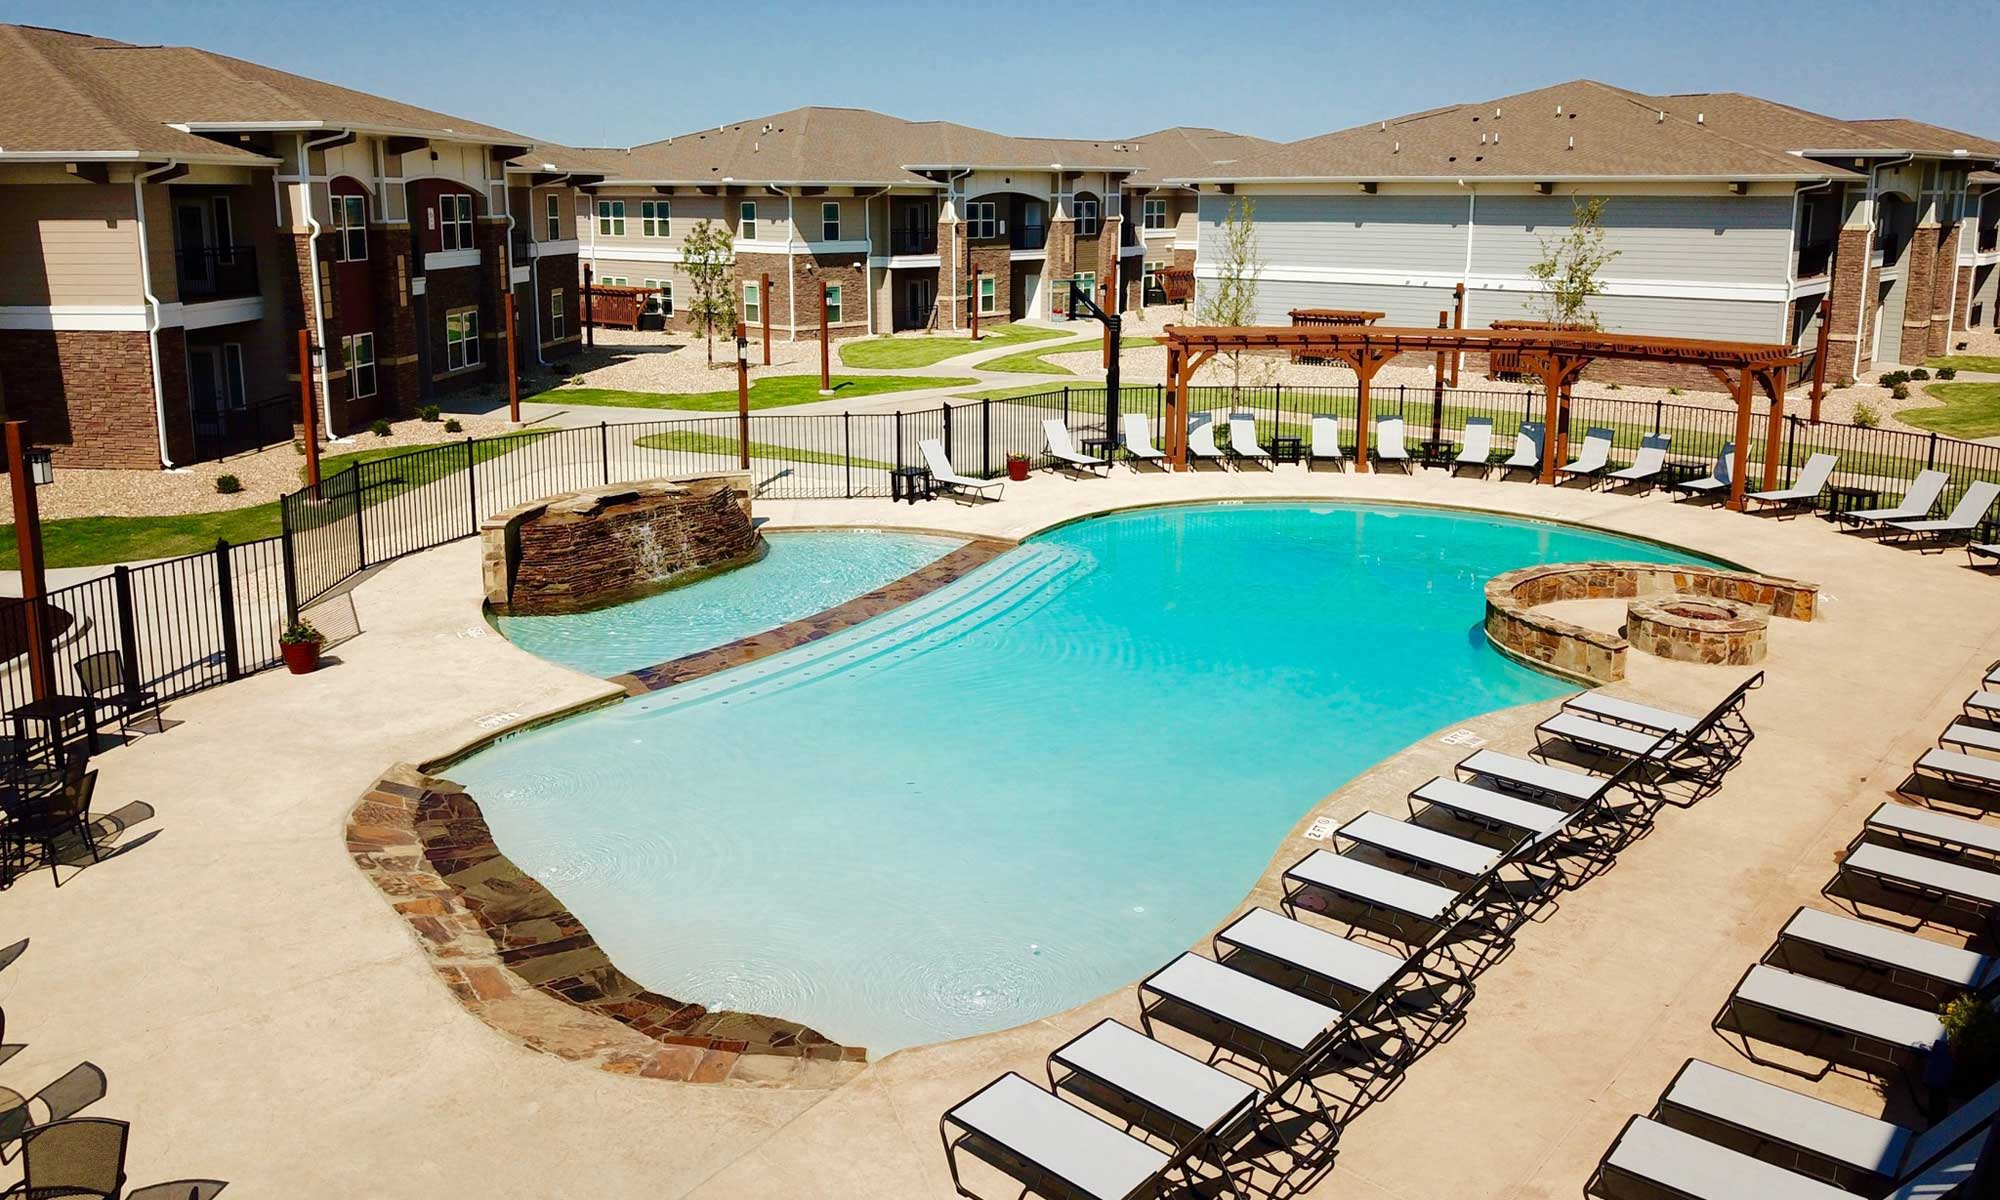 Apartments in Wolfforth, TX